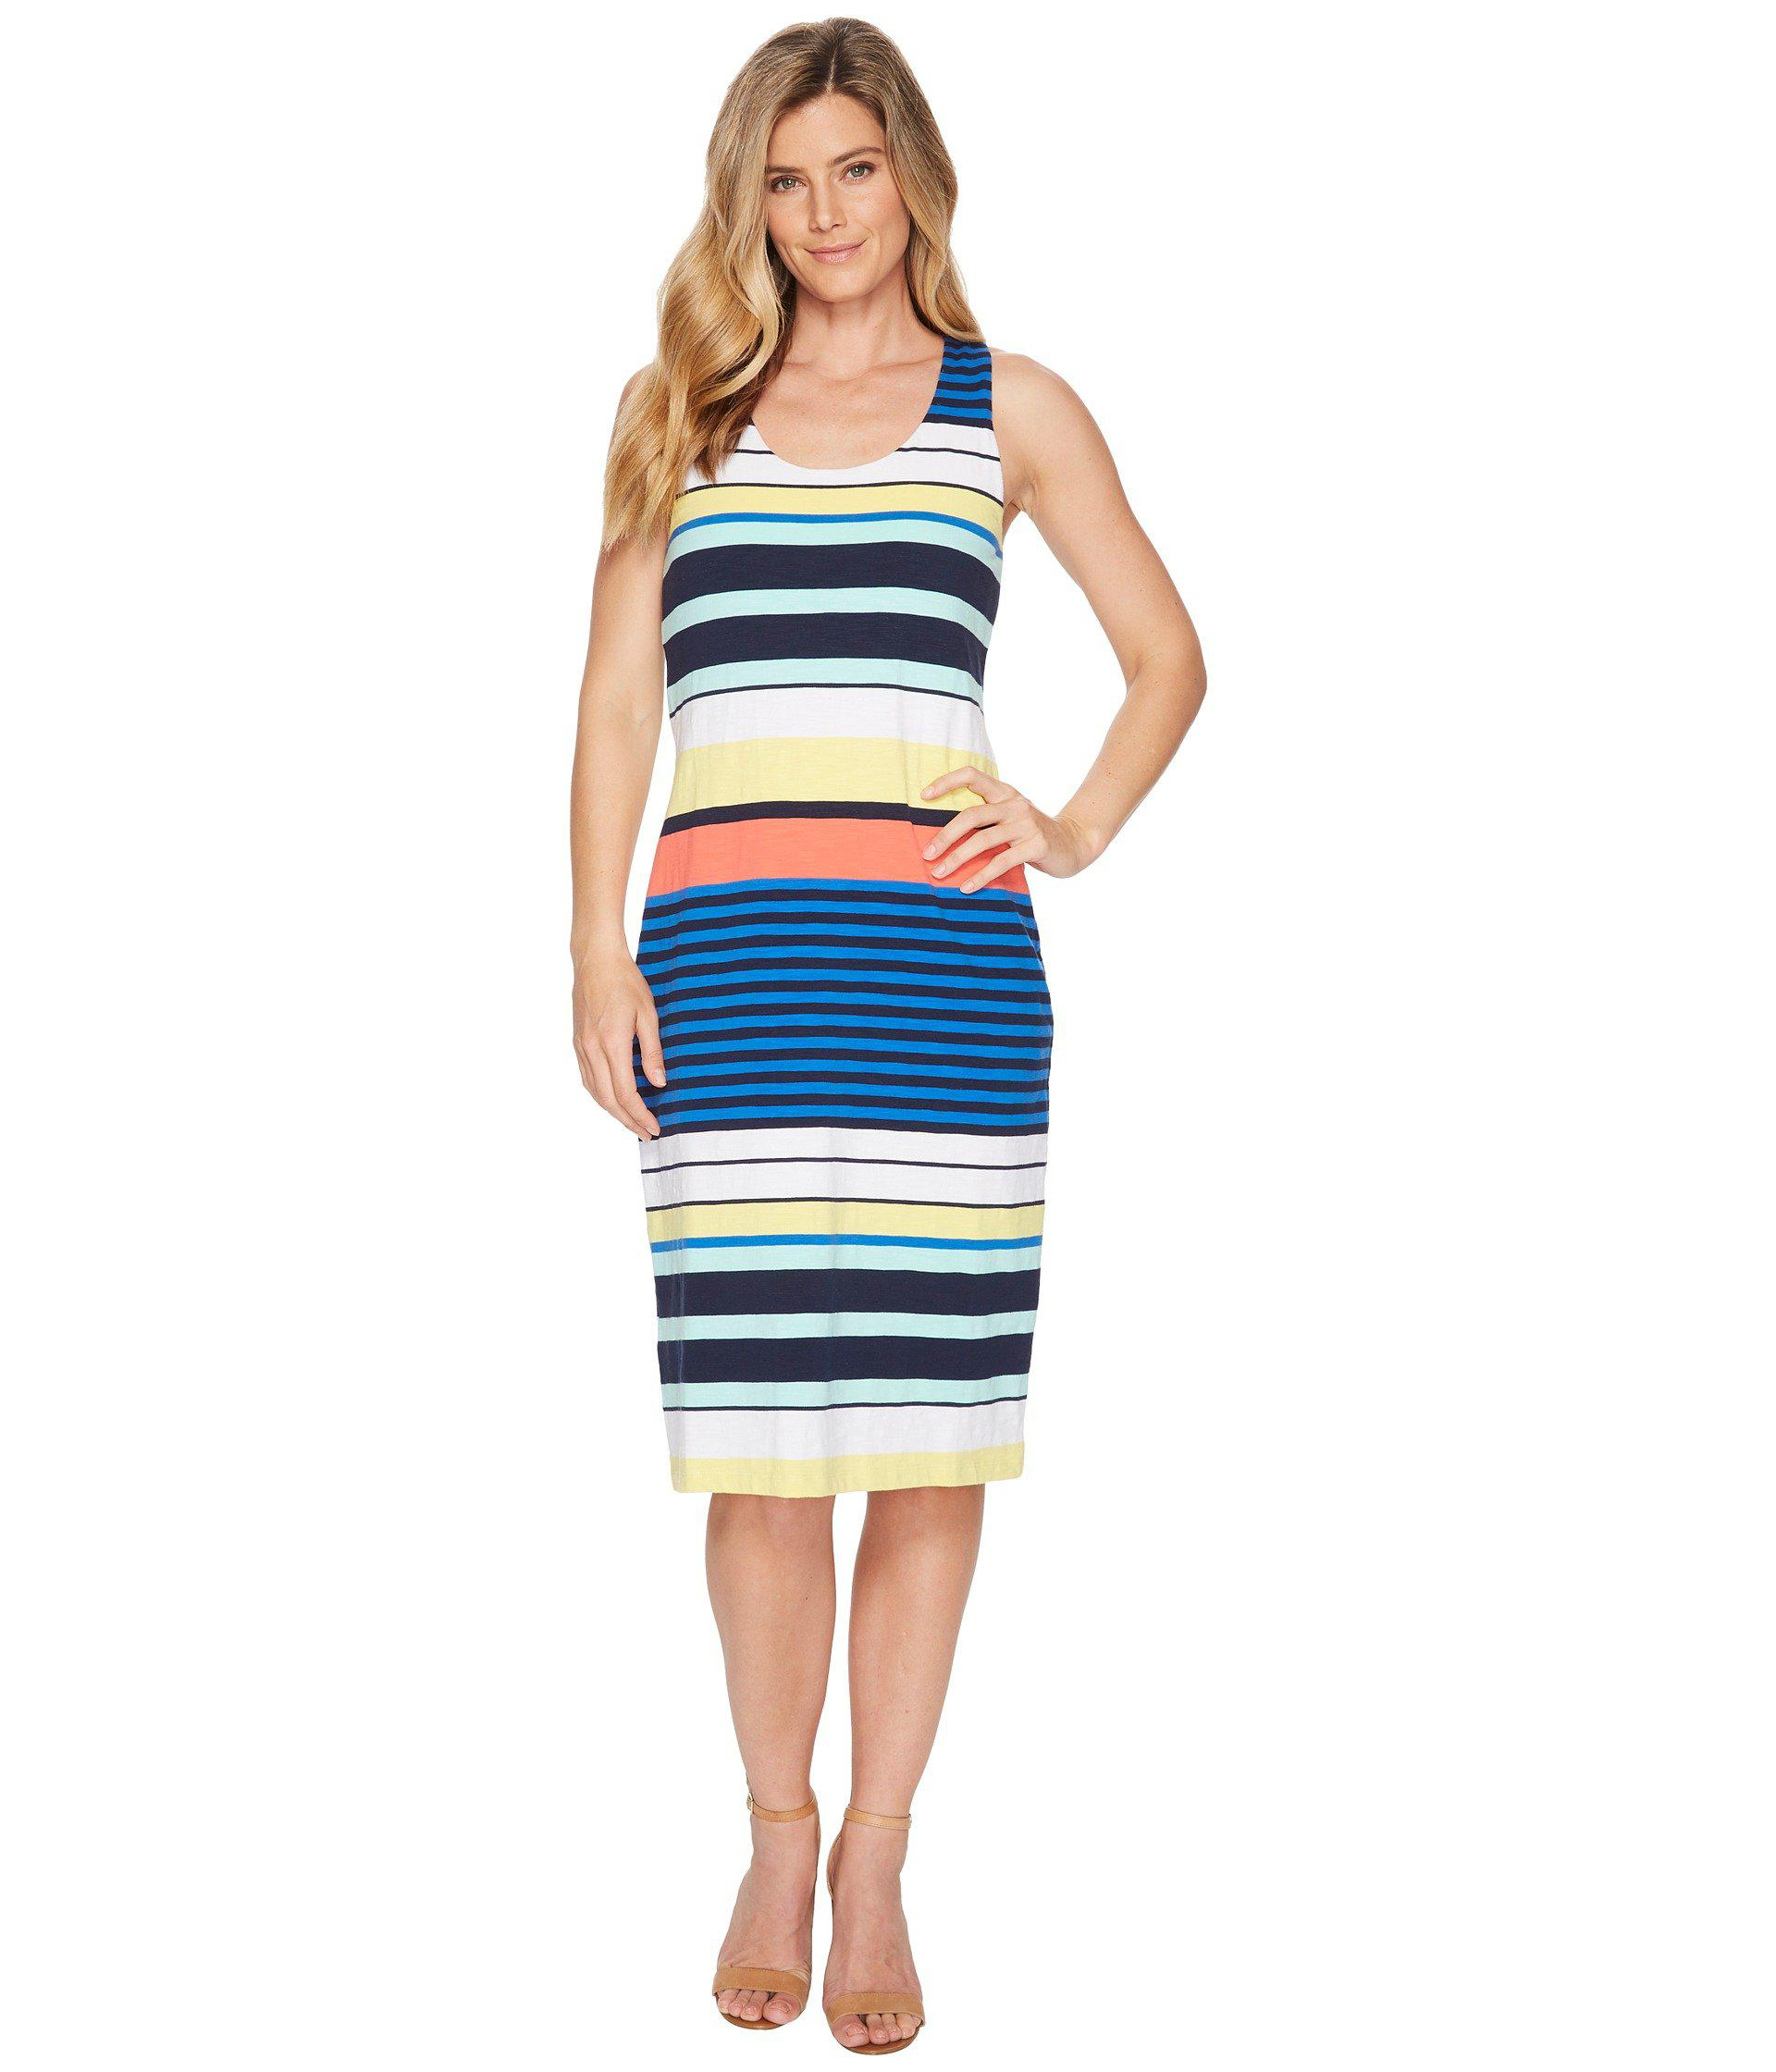 7170987e58 Lyst - Tommy Bahama Harbour Sea Maxi Tank Dress in Blue - Save 25%